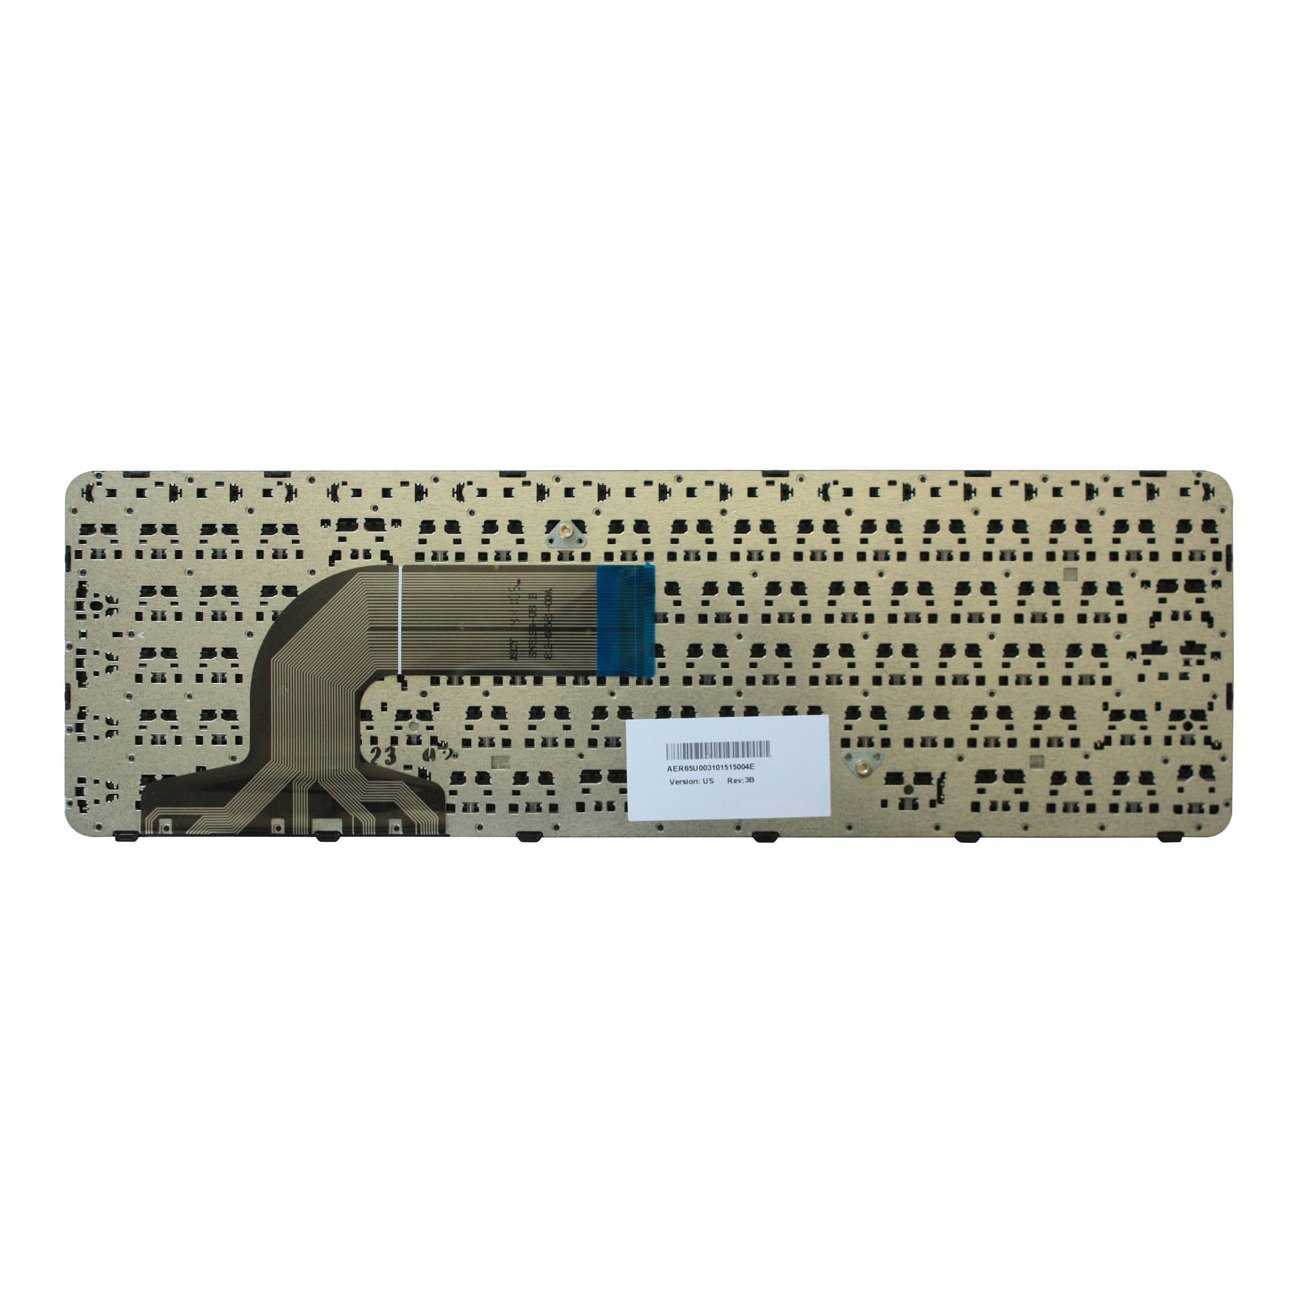 Amazon.com: ACOMPATIBLE Replacement Keyboard for HP Pavilion 15-e000 15-e100 15-n000 15-n100 15-n200 15-n300 Series Laptop Black with Frame: Computers & ...